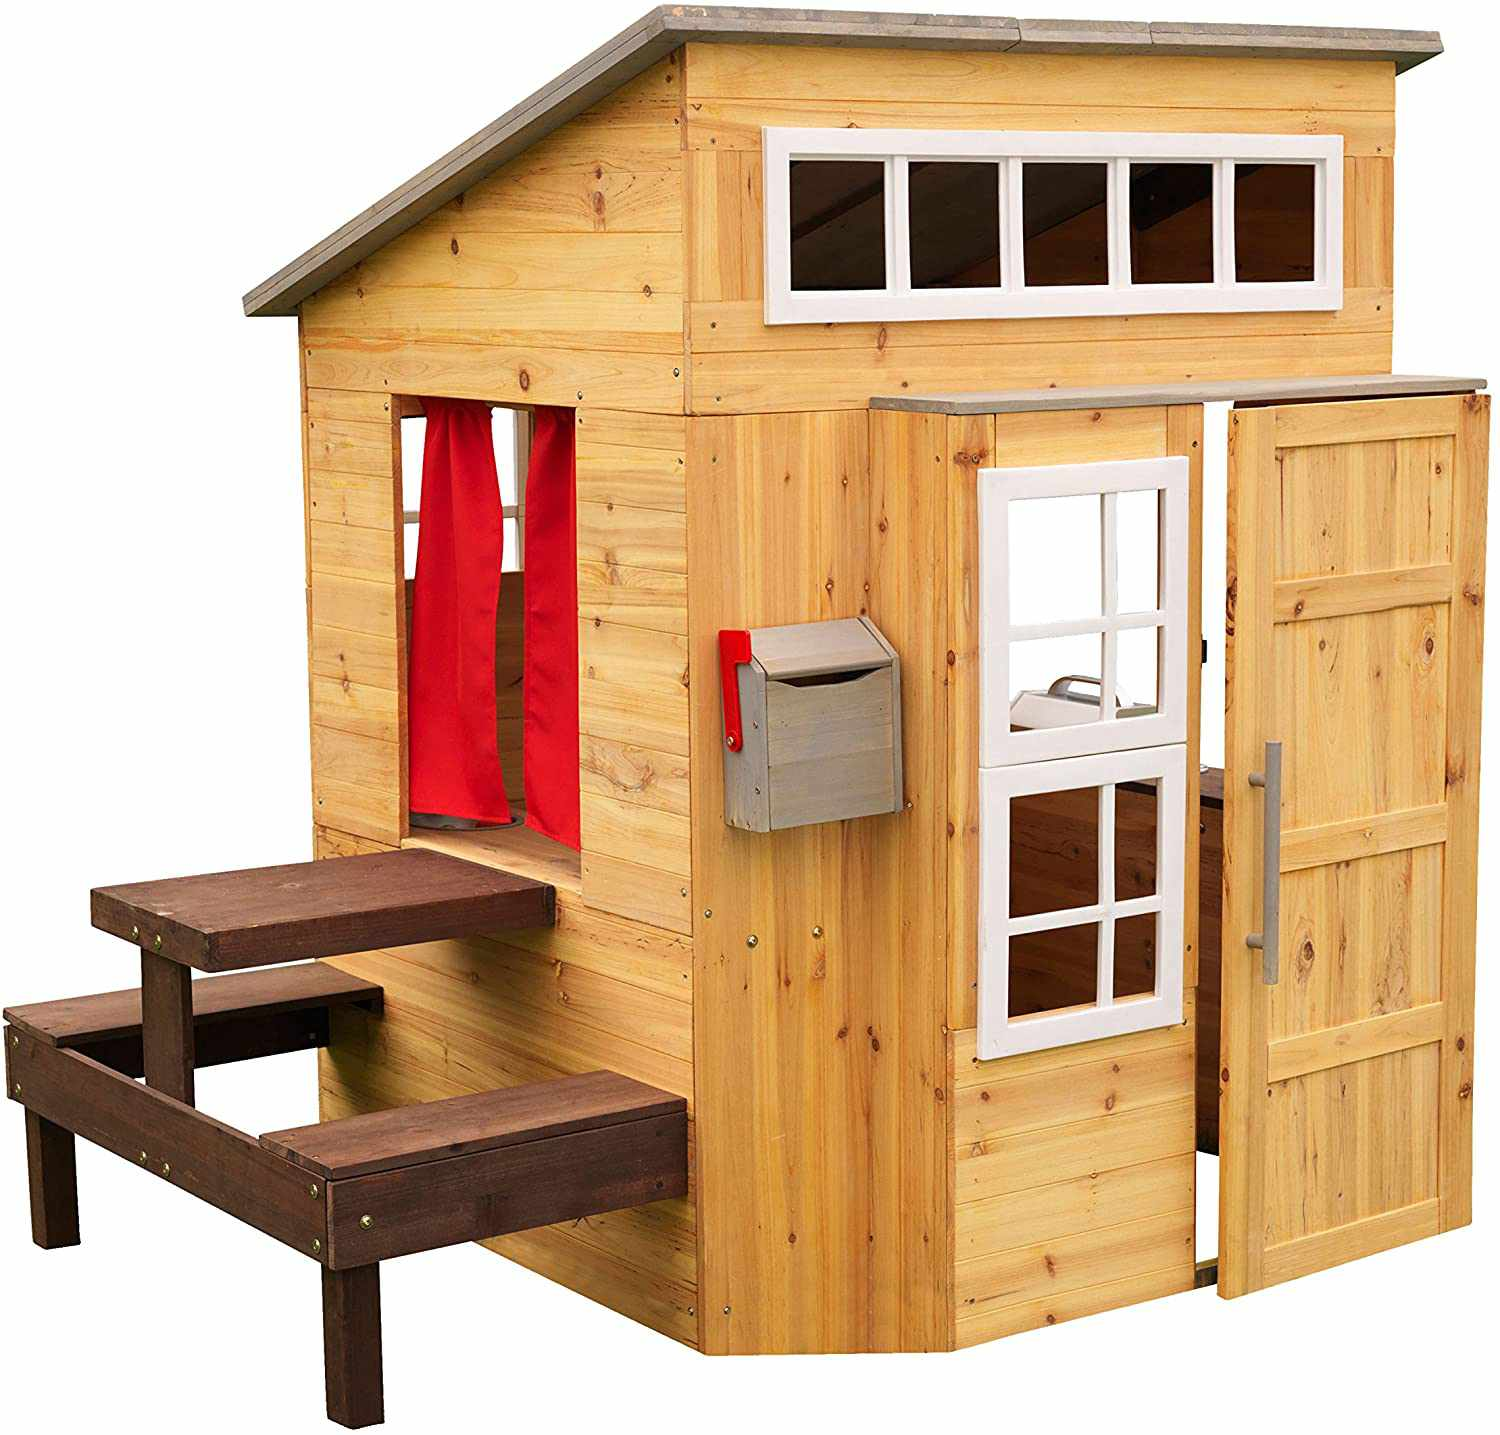 The 8 Best Playhouses For Toddlers Of 2021, Best Outdoor Playhouse For Toddlers